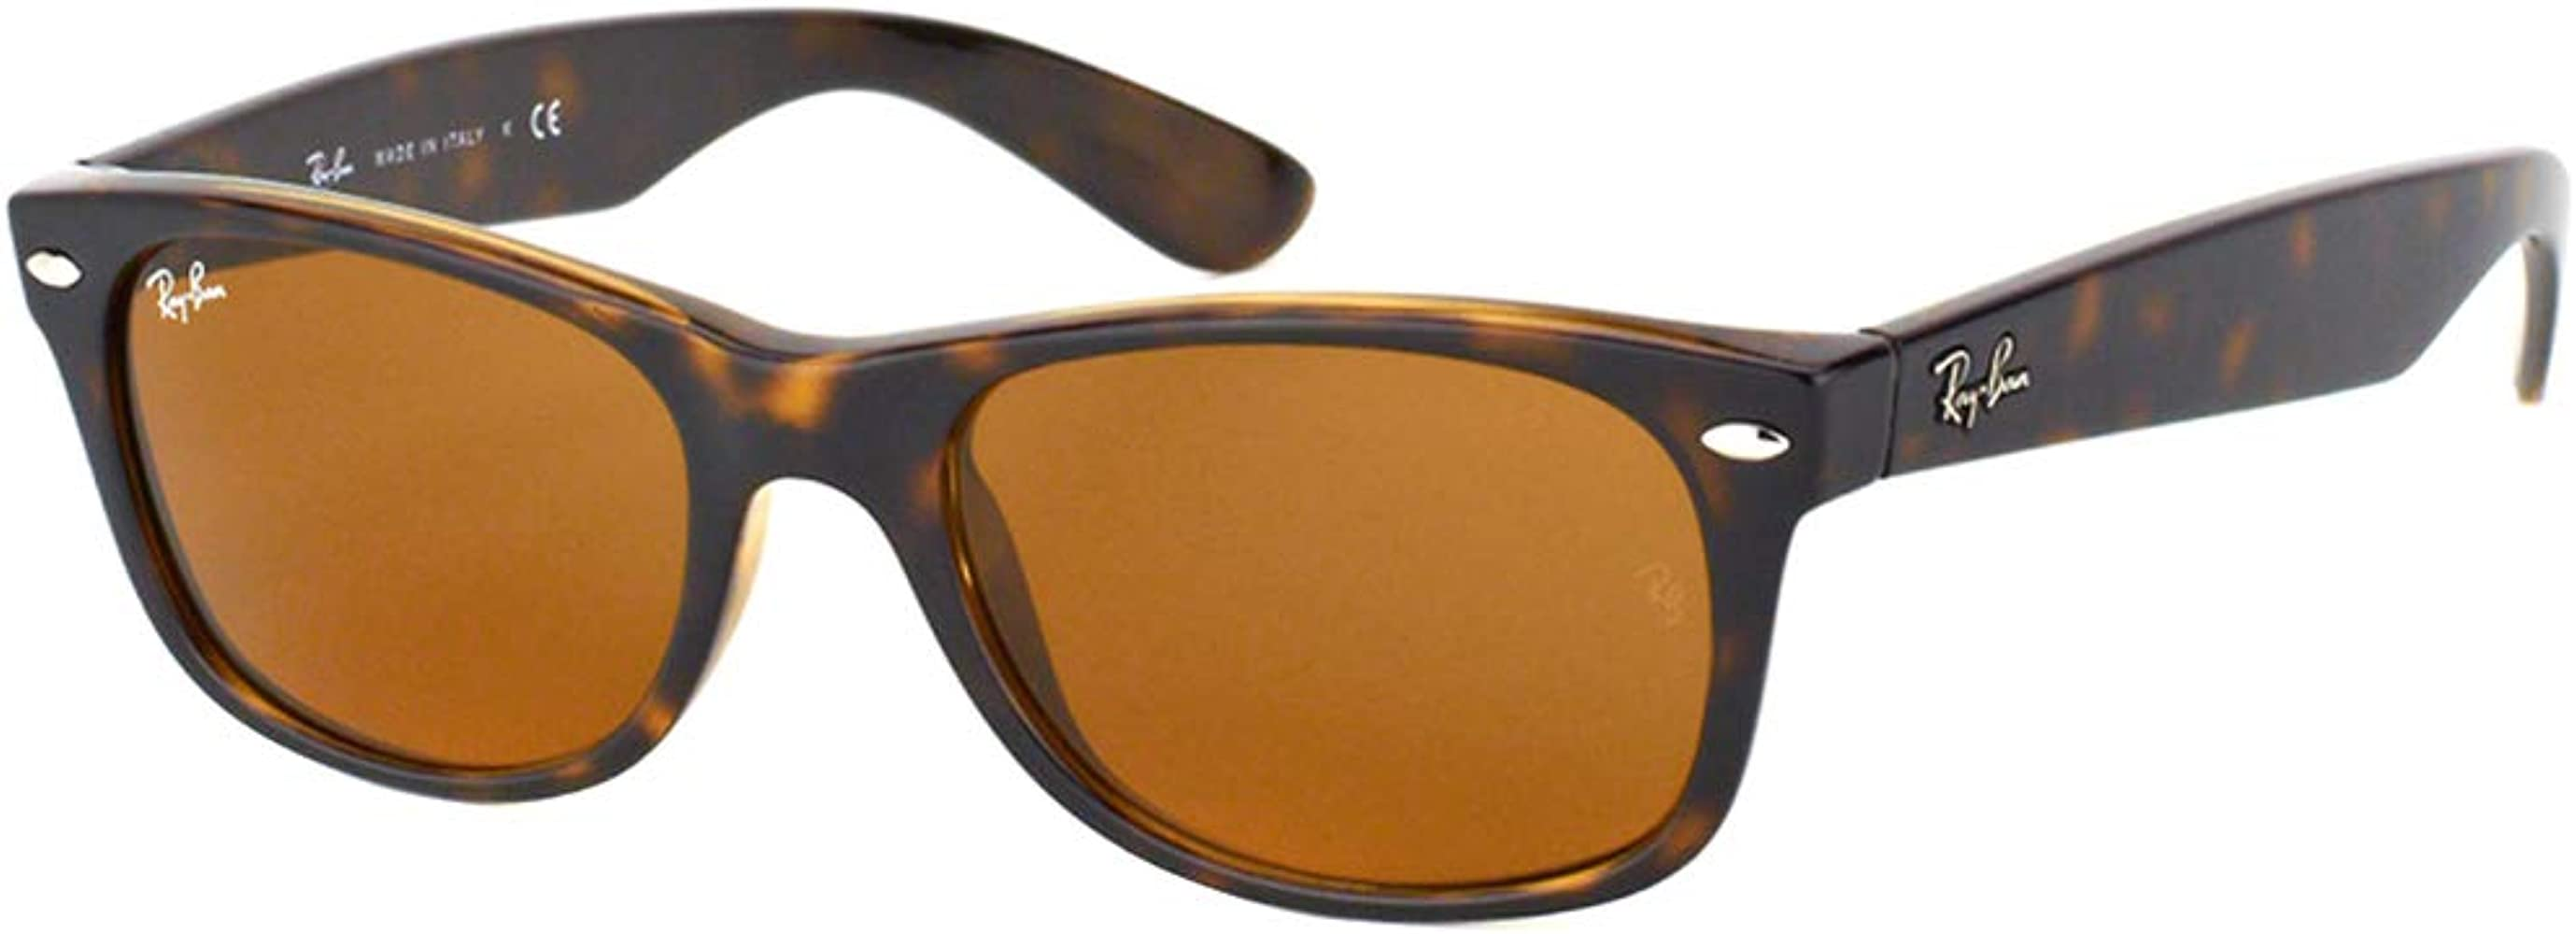 Ray-Ban New Wayfarer - Gafas de sol unisex, color marrón (havana ...